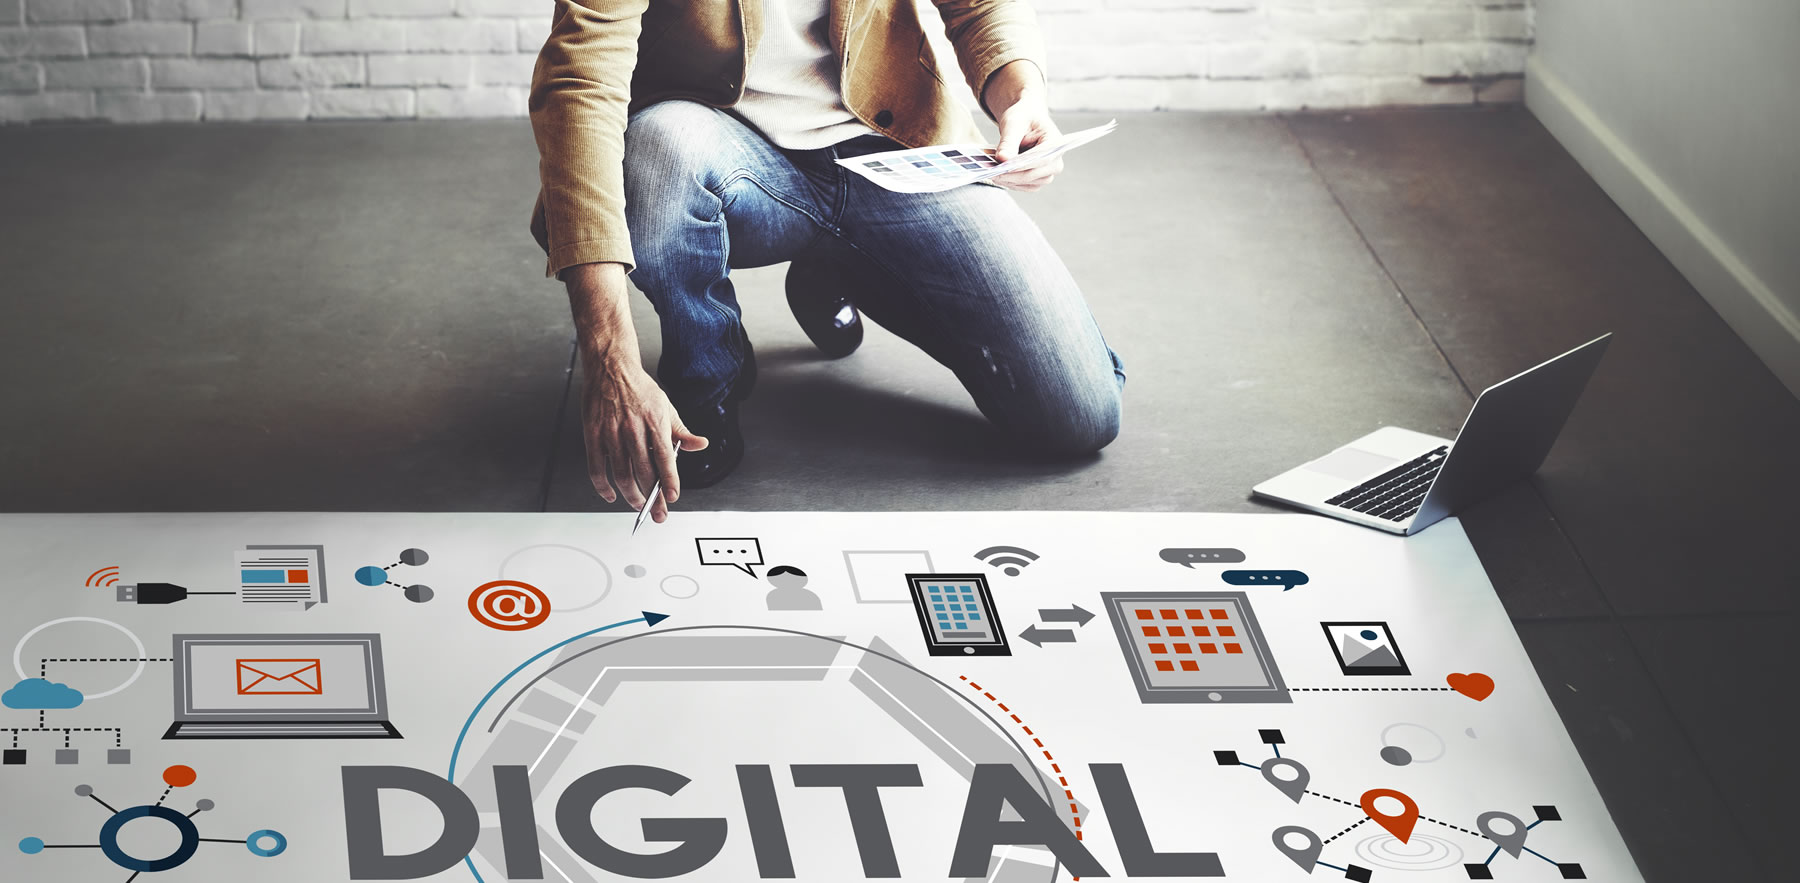 Man kneeling and looking at digital marketing strategy graphic - Marketing